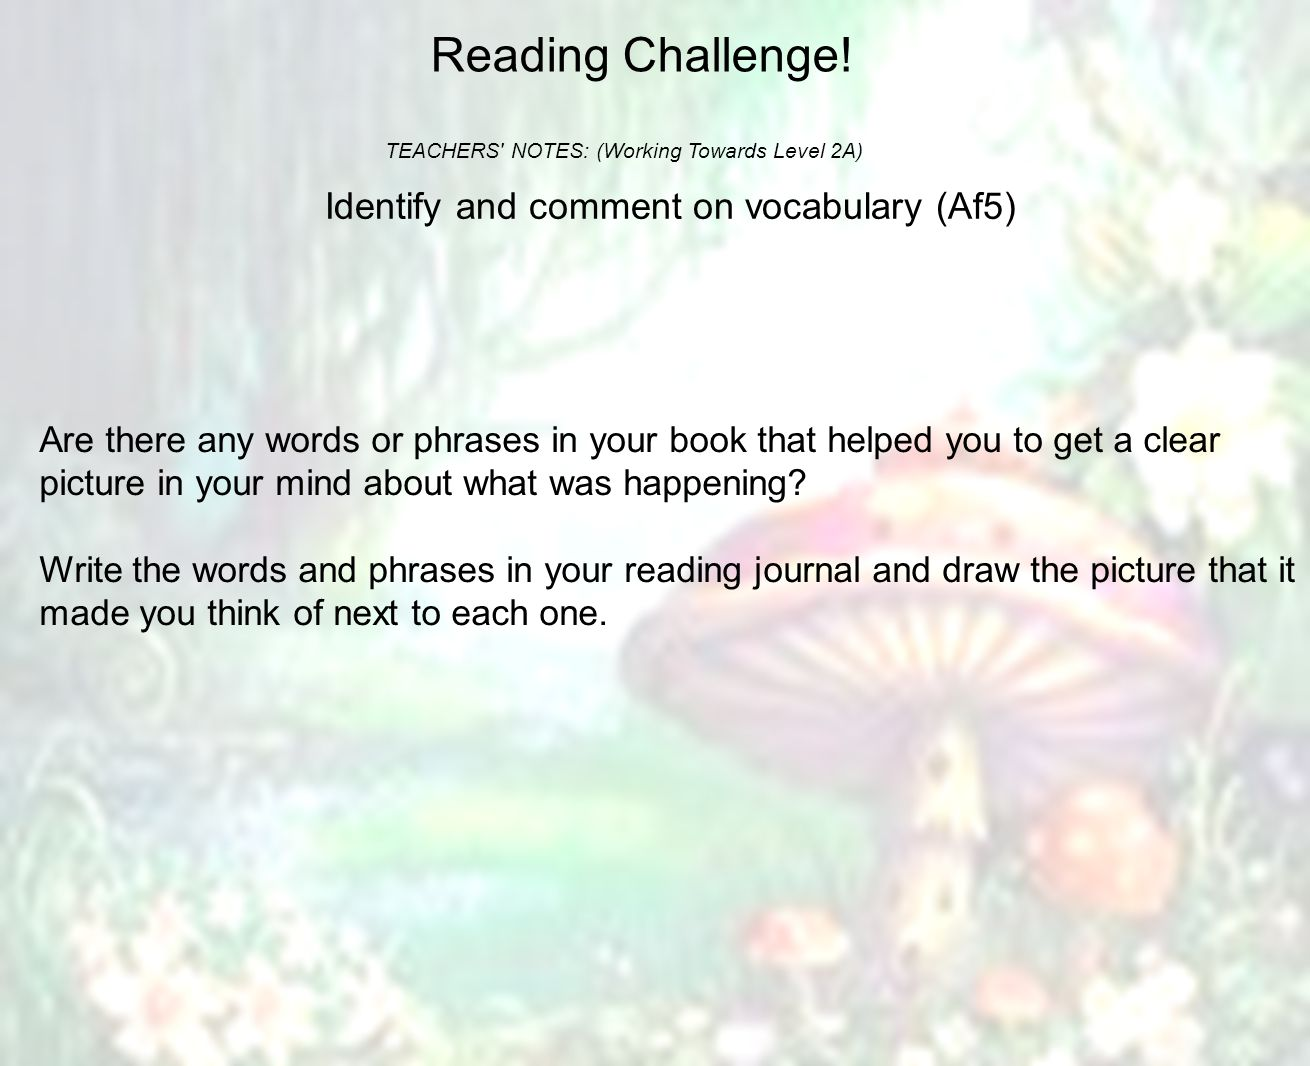 Reading Challenge! Identify and comment on vocabulary (Af5)